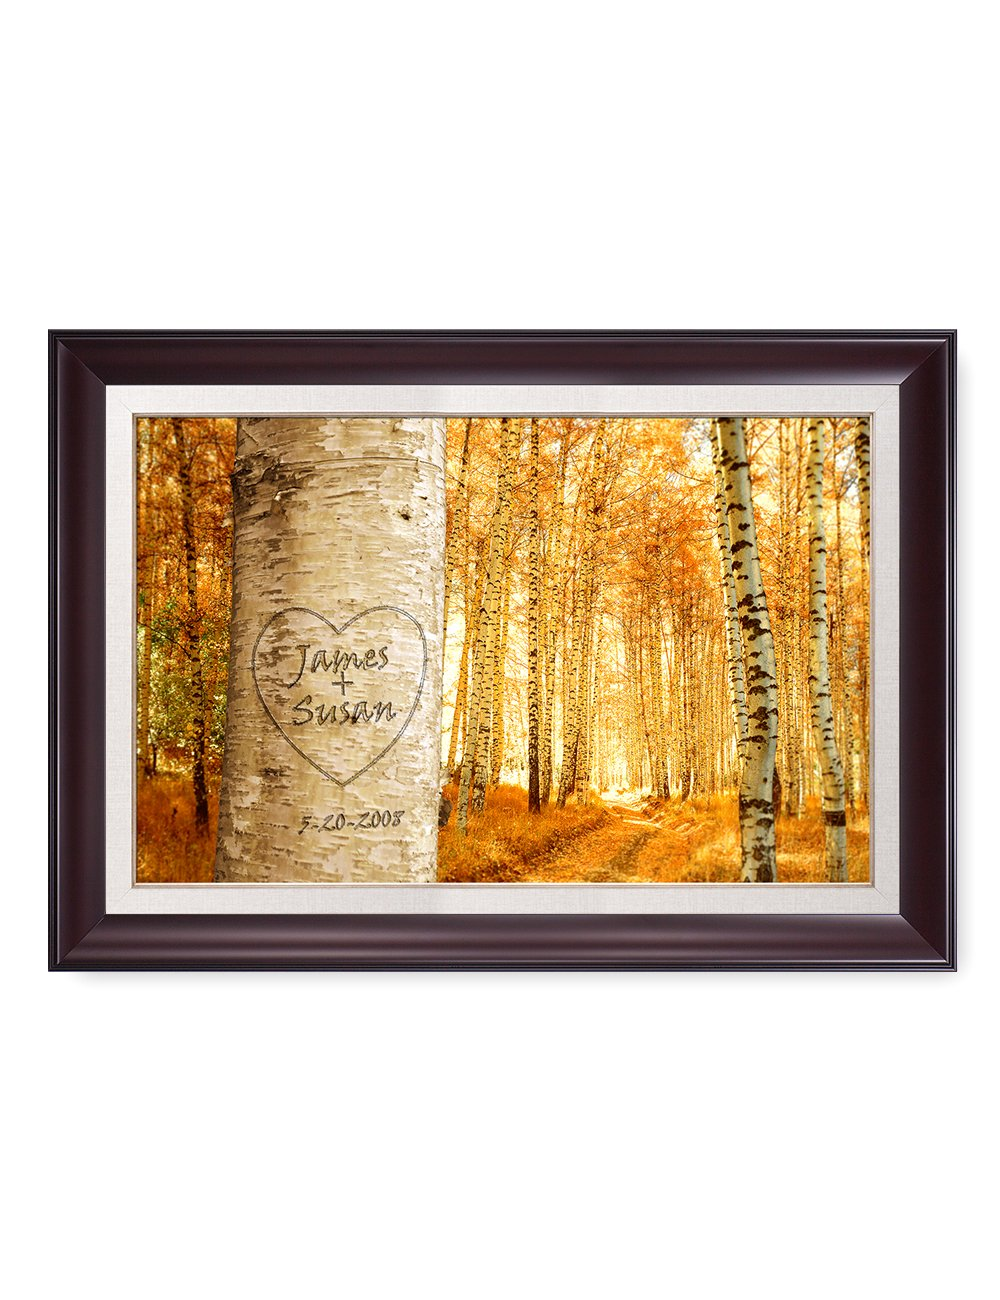 DecorArts - ''love grows'' - Personalized Framed Canvas Prints Gift, includes Names and the Special Date - Perfect Gift for Anniversary, Valentine's day,Wedding. Framed size: 34'' x 24'' by DECORARTS